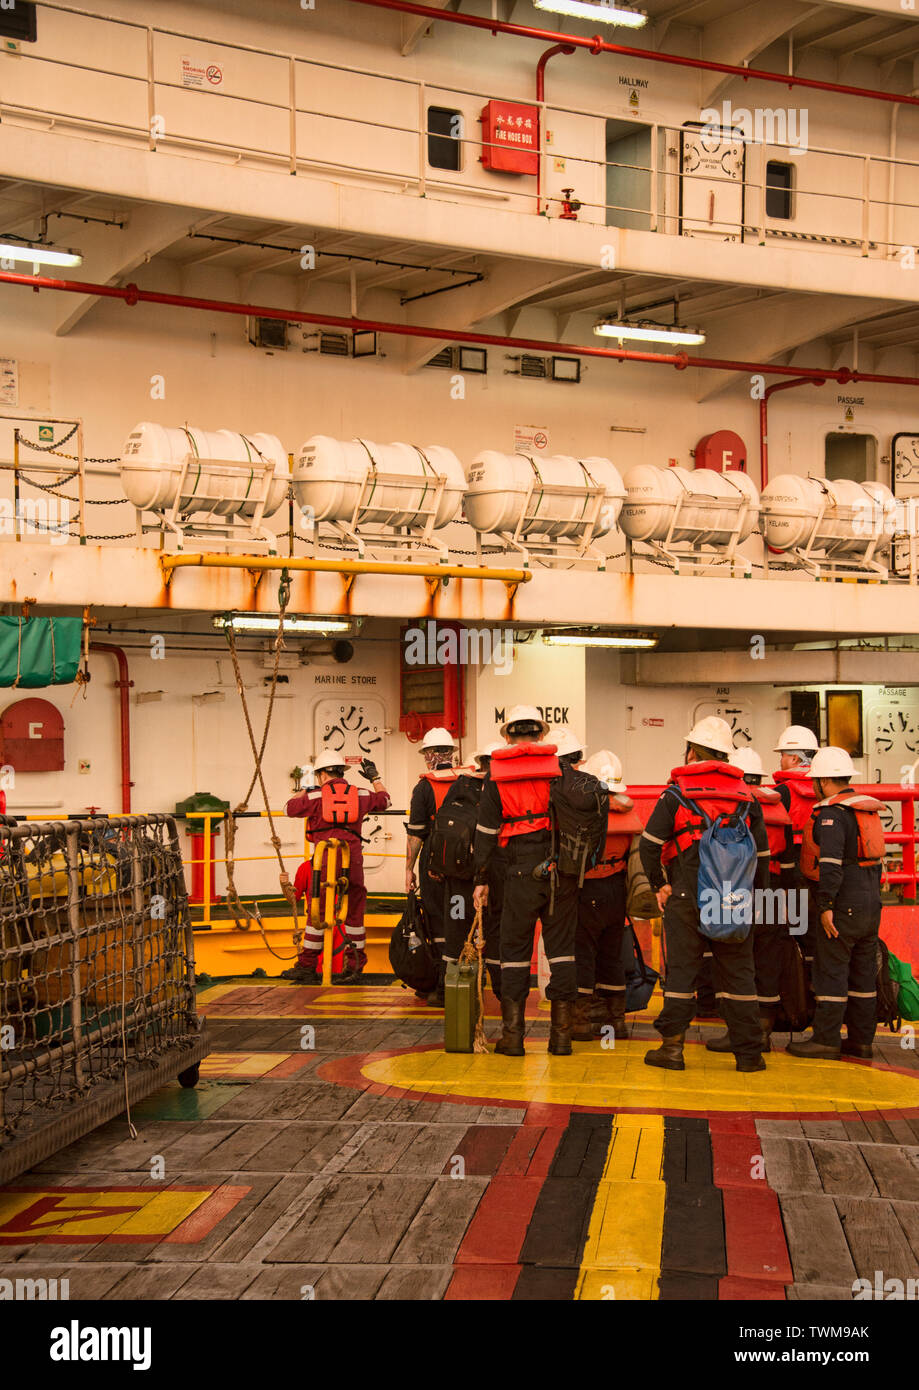 offshore worker get ready to boarding accommodation barge from other boat - Stock Image